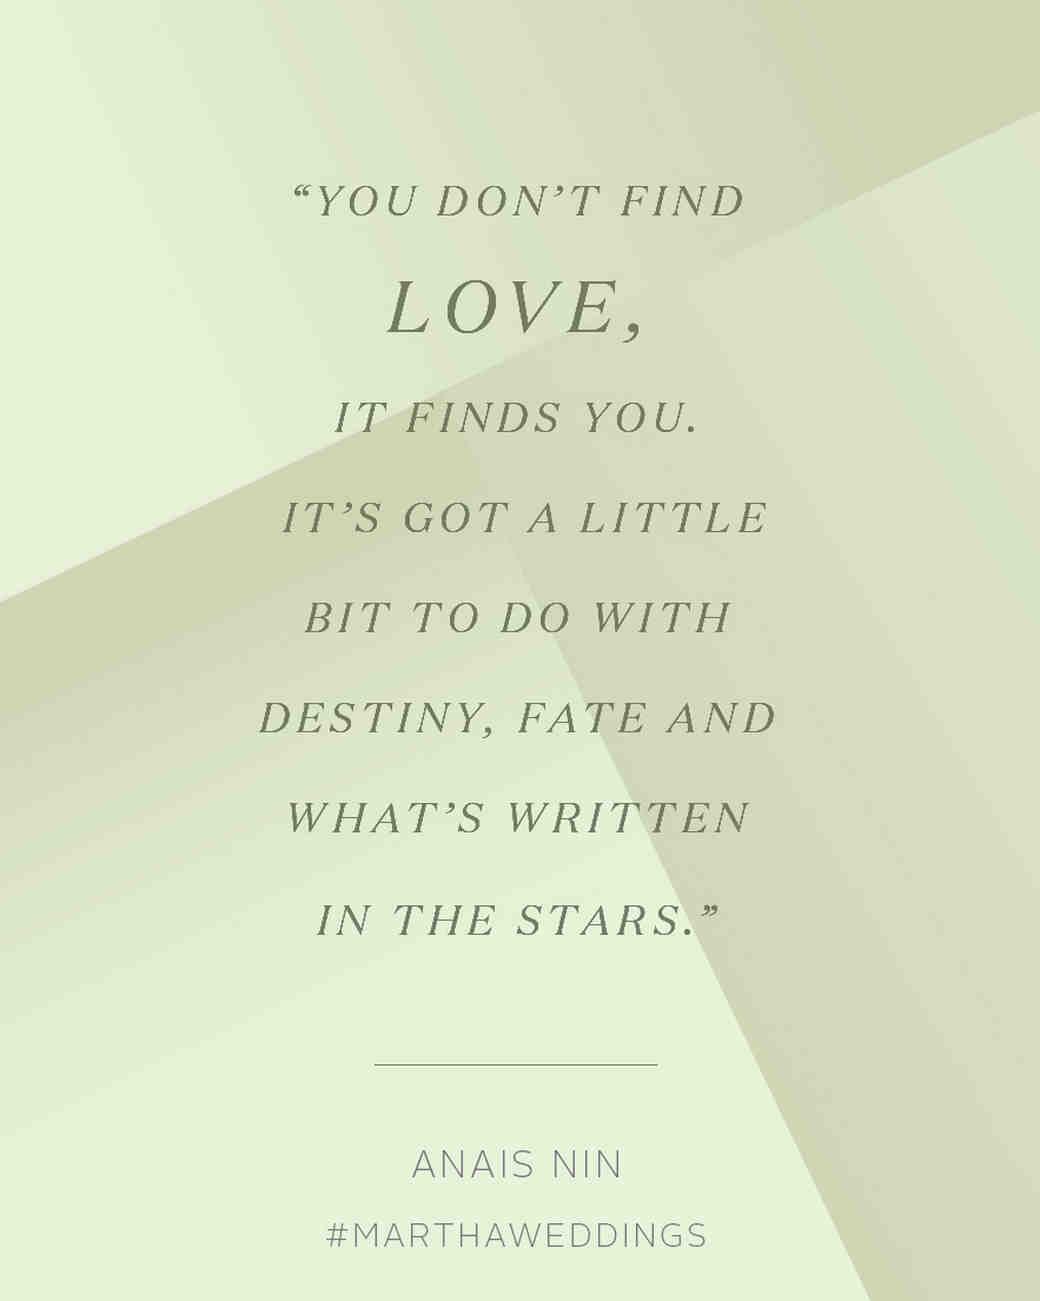 love-quotes-anais-nin-written-in-the-stars-1015.jpg